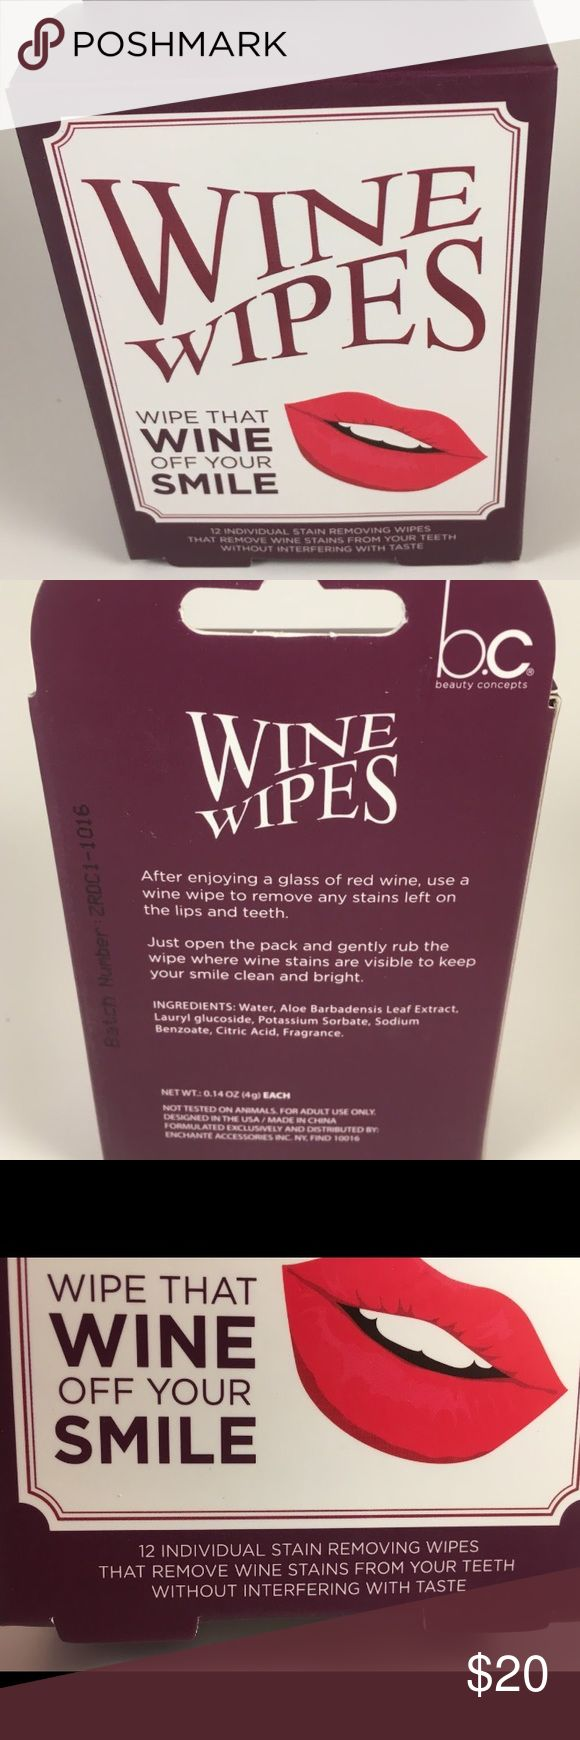 Wine wipes individually wipes 12 pack Brand new! 12 individual stain removing wipes that removes wine stains from your teeth without interfering with taste. These things are awesome! Individual wipes for on the go. Beauty Concepts Makeup Lipstick